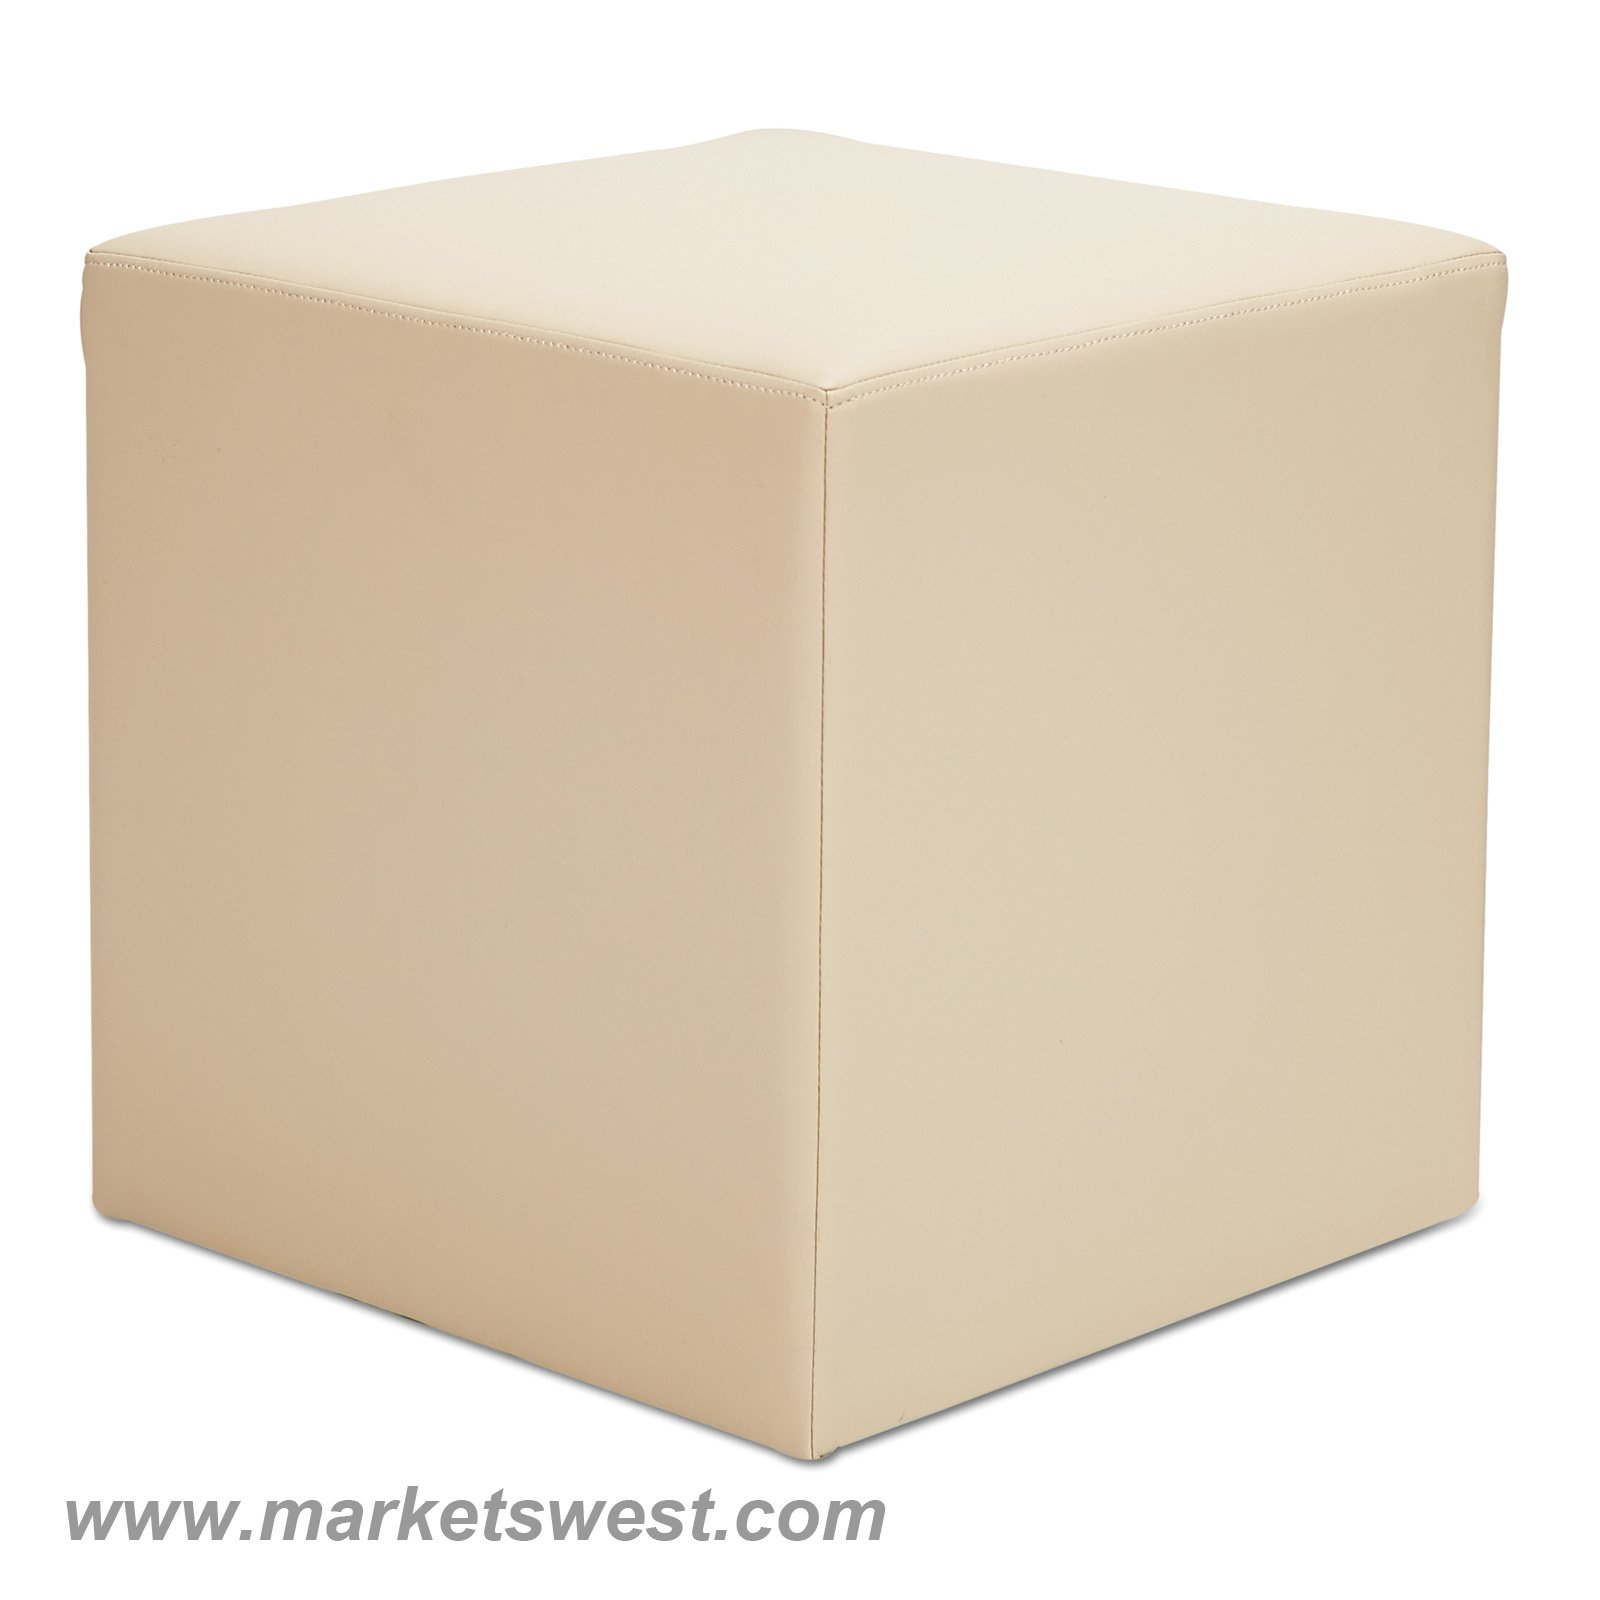 We Series Collaboration Seating Cube Bench